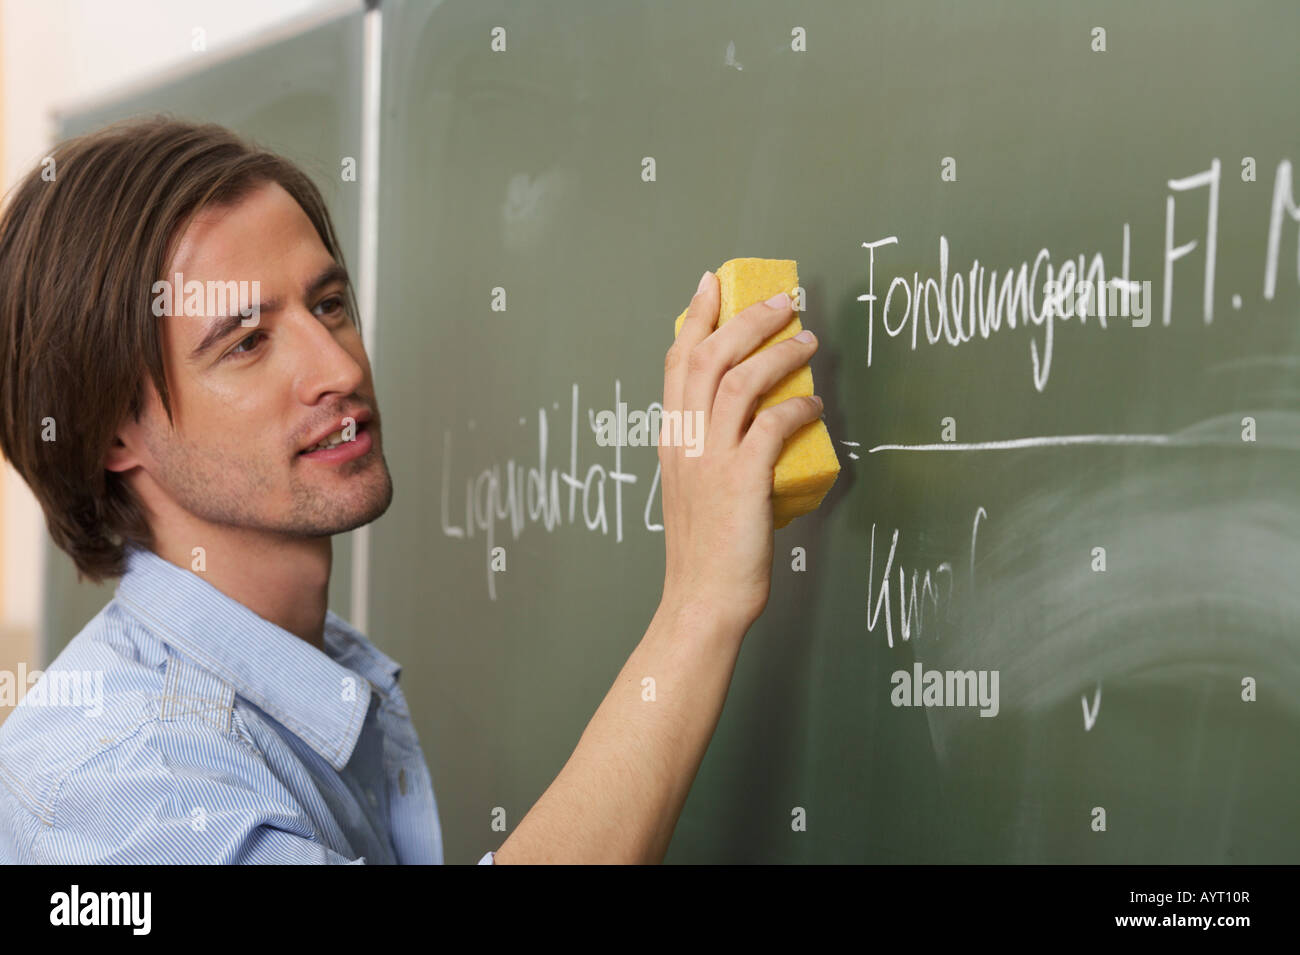 A man is smearing the board - Stock Image